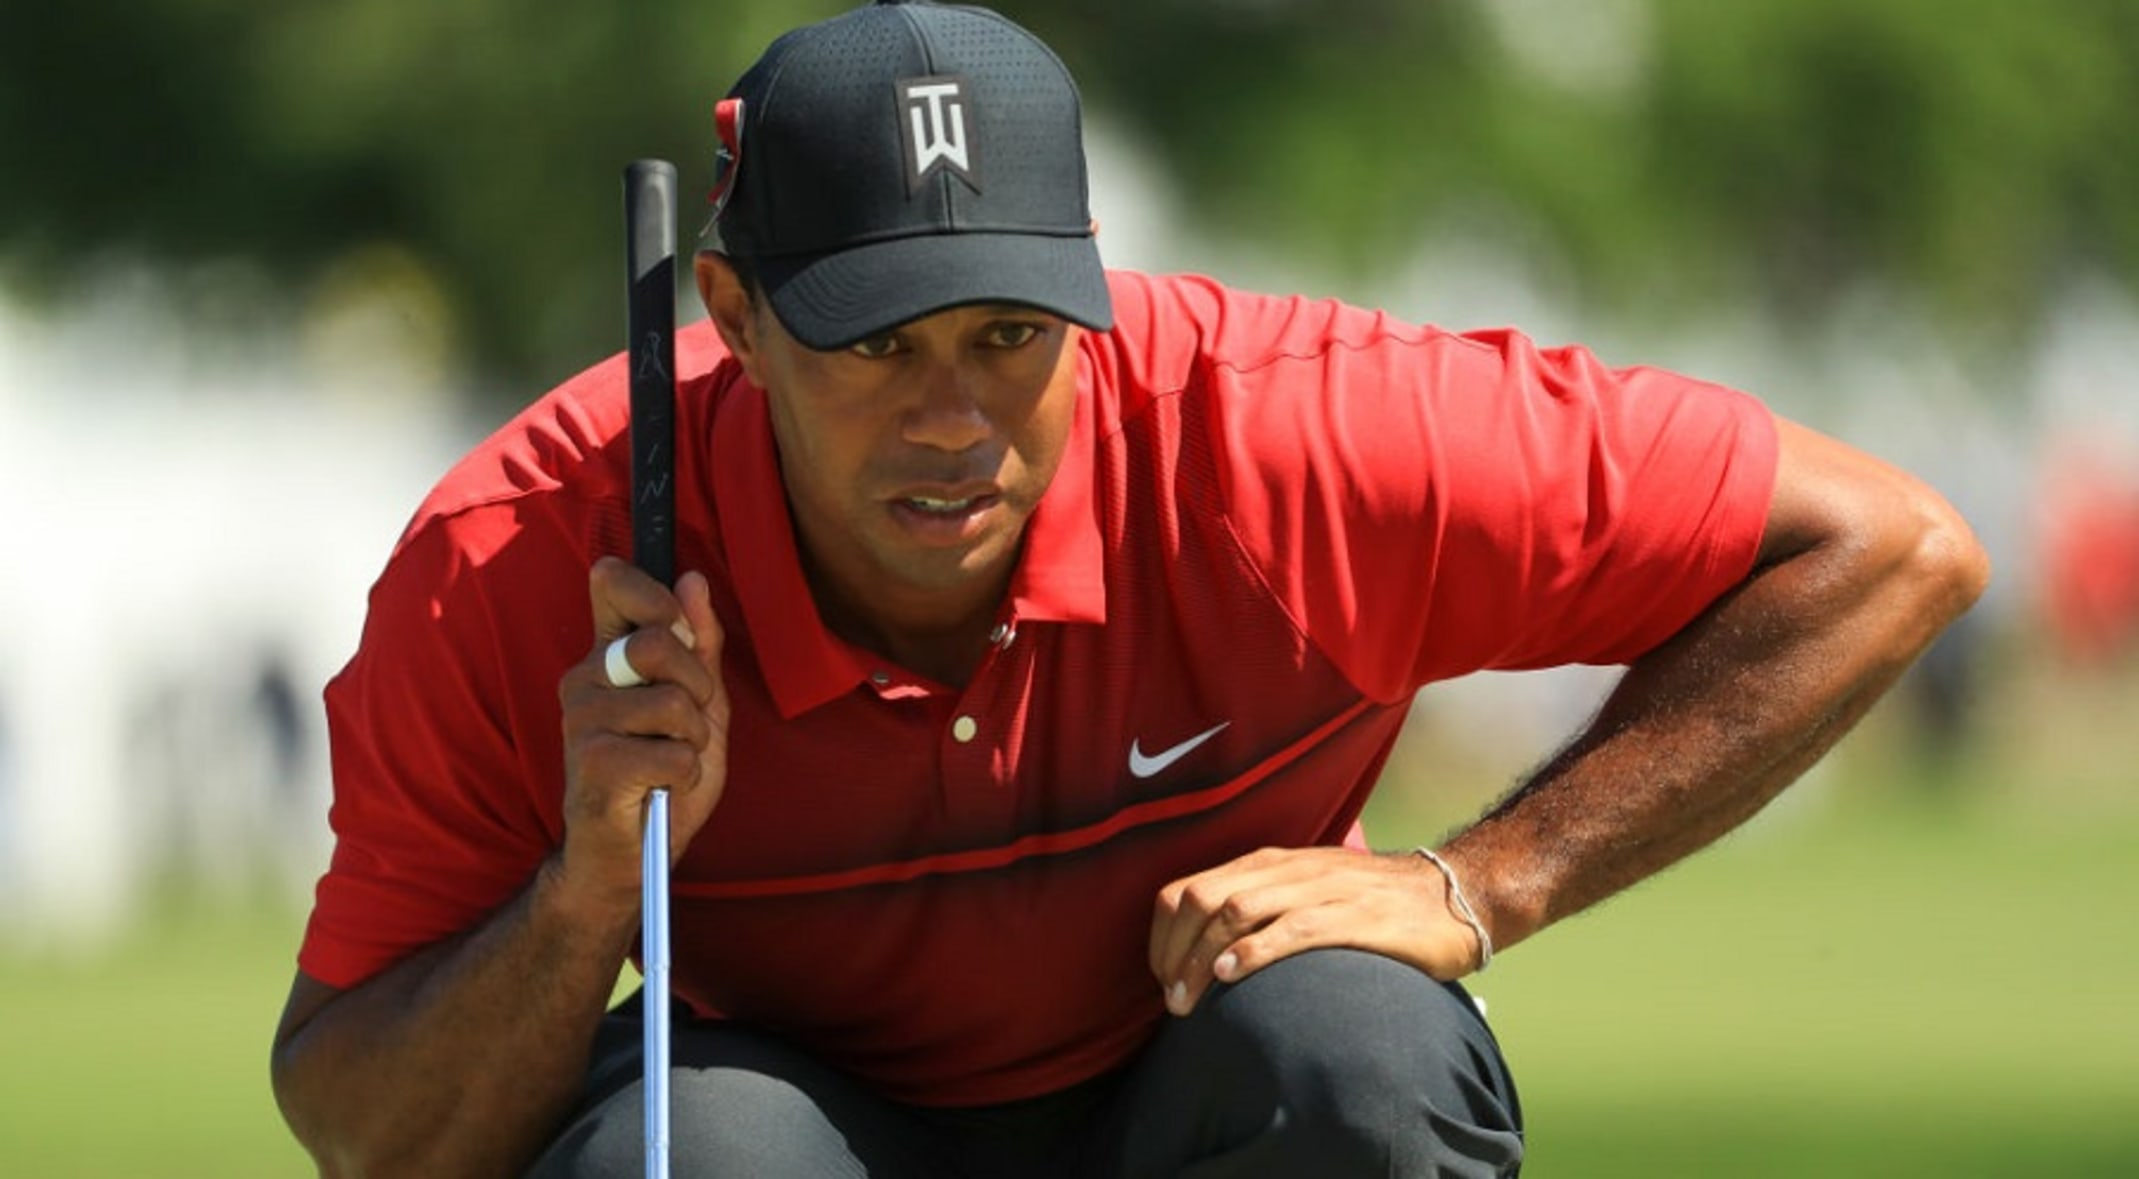 a2f4a472cd3bc Tiger Woods announced on his Twitter account Friday morning that he has  committed to the two